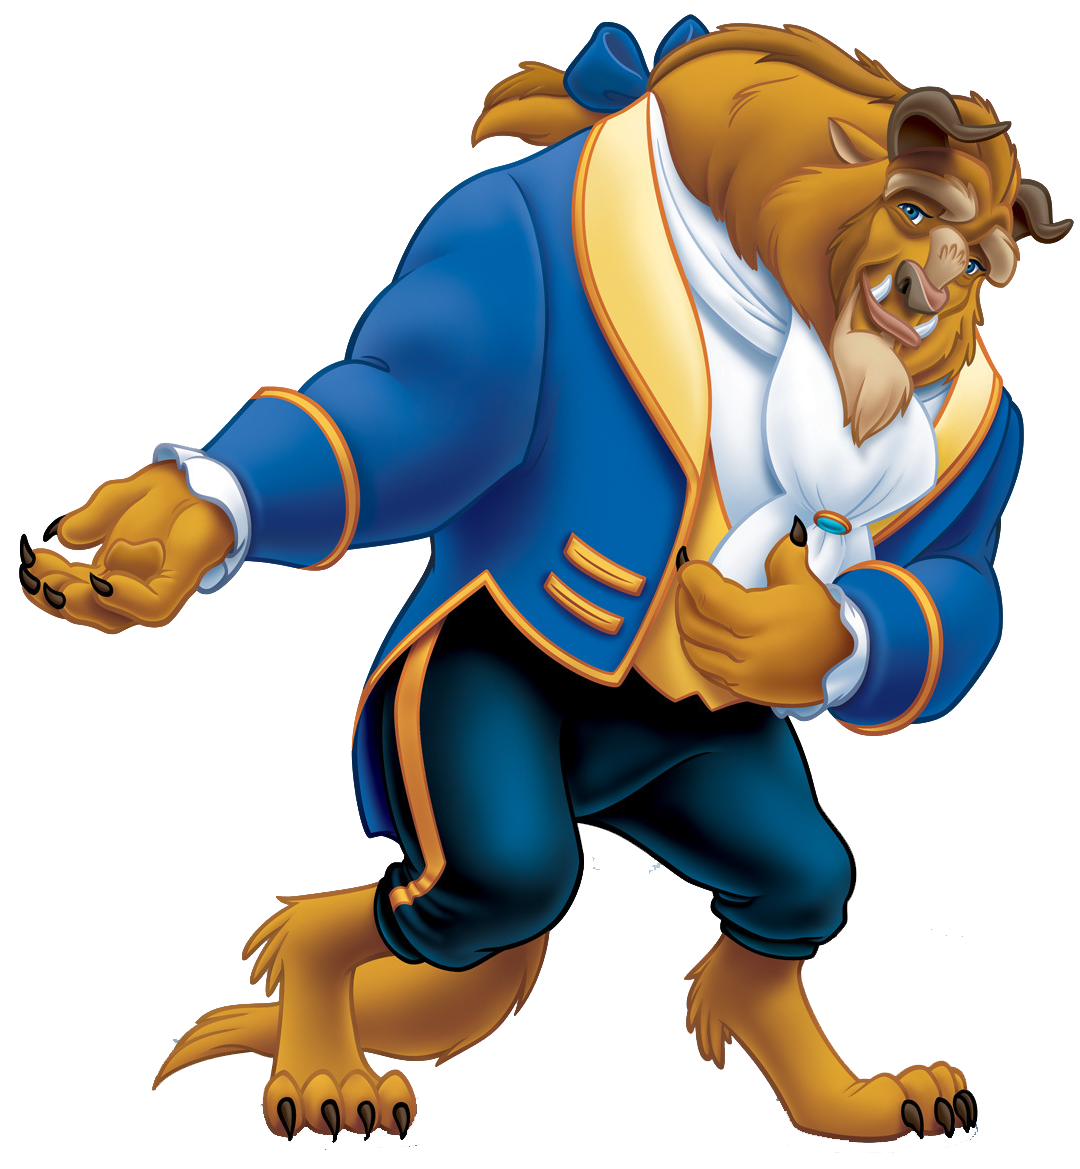 A Fera | Wiki Disney Princesas | FANDOM powered by Wikia